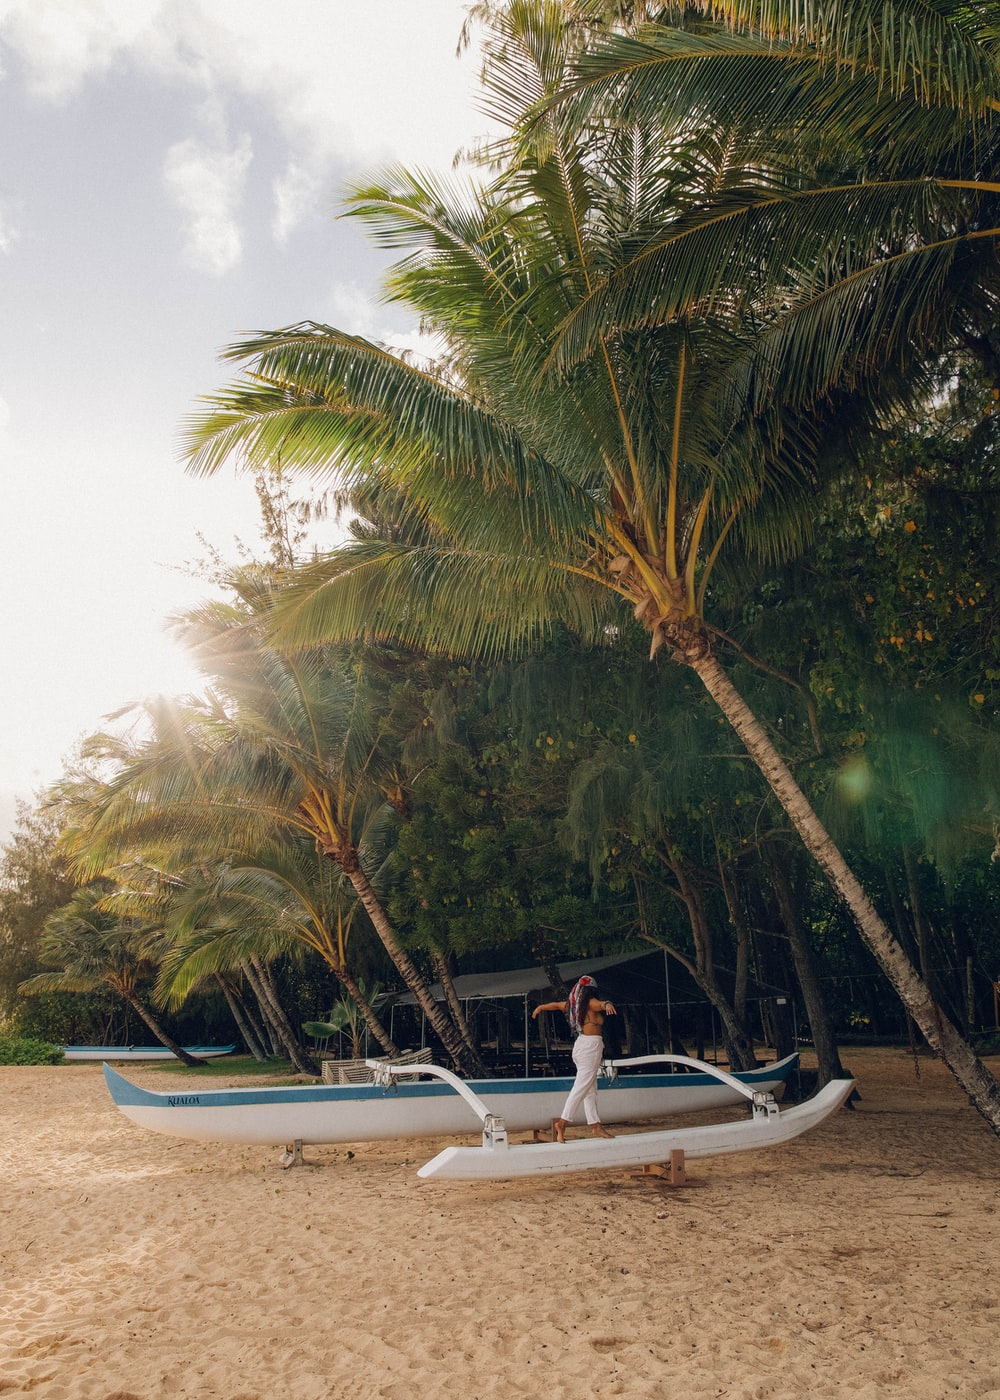 woman in white shirt sitting on white surfboard near palm trees during daytime